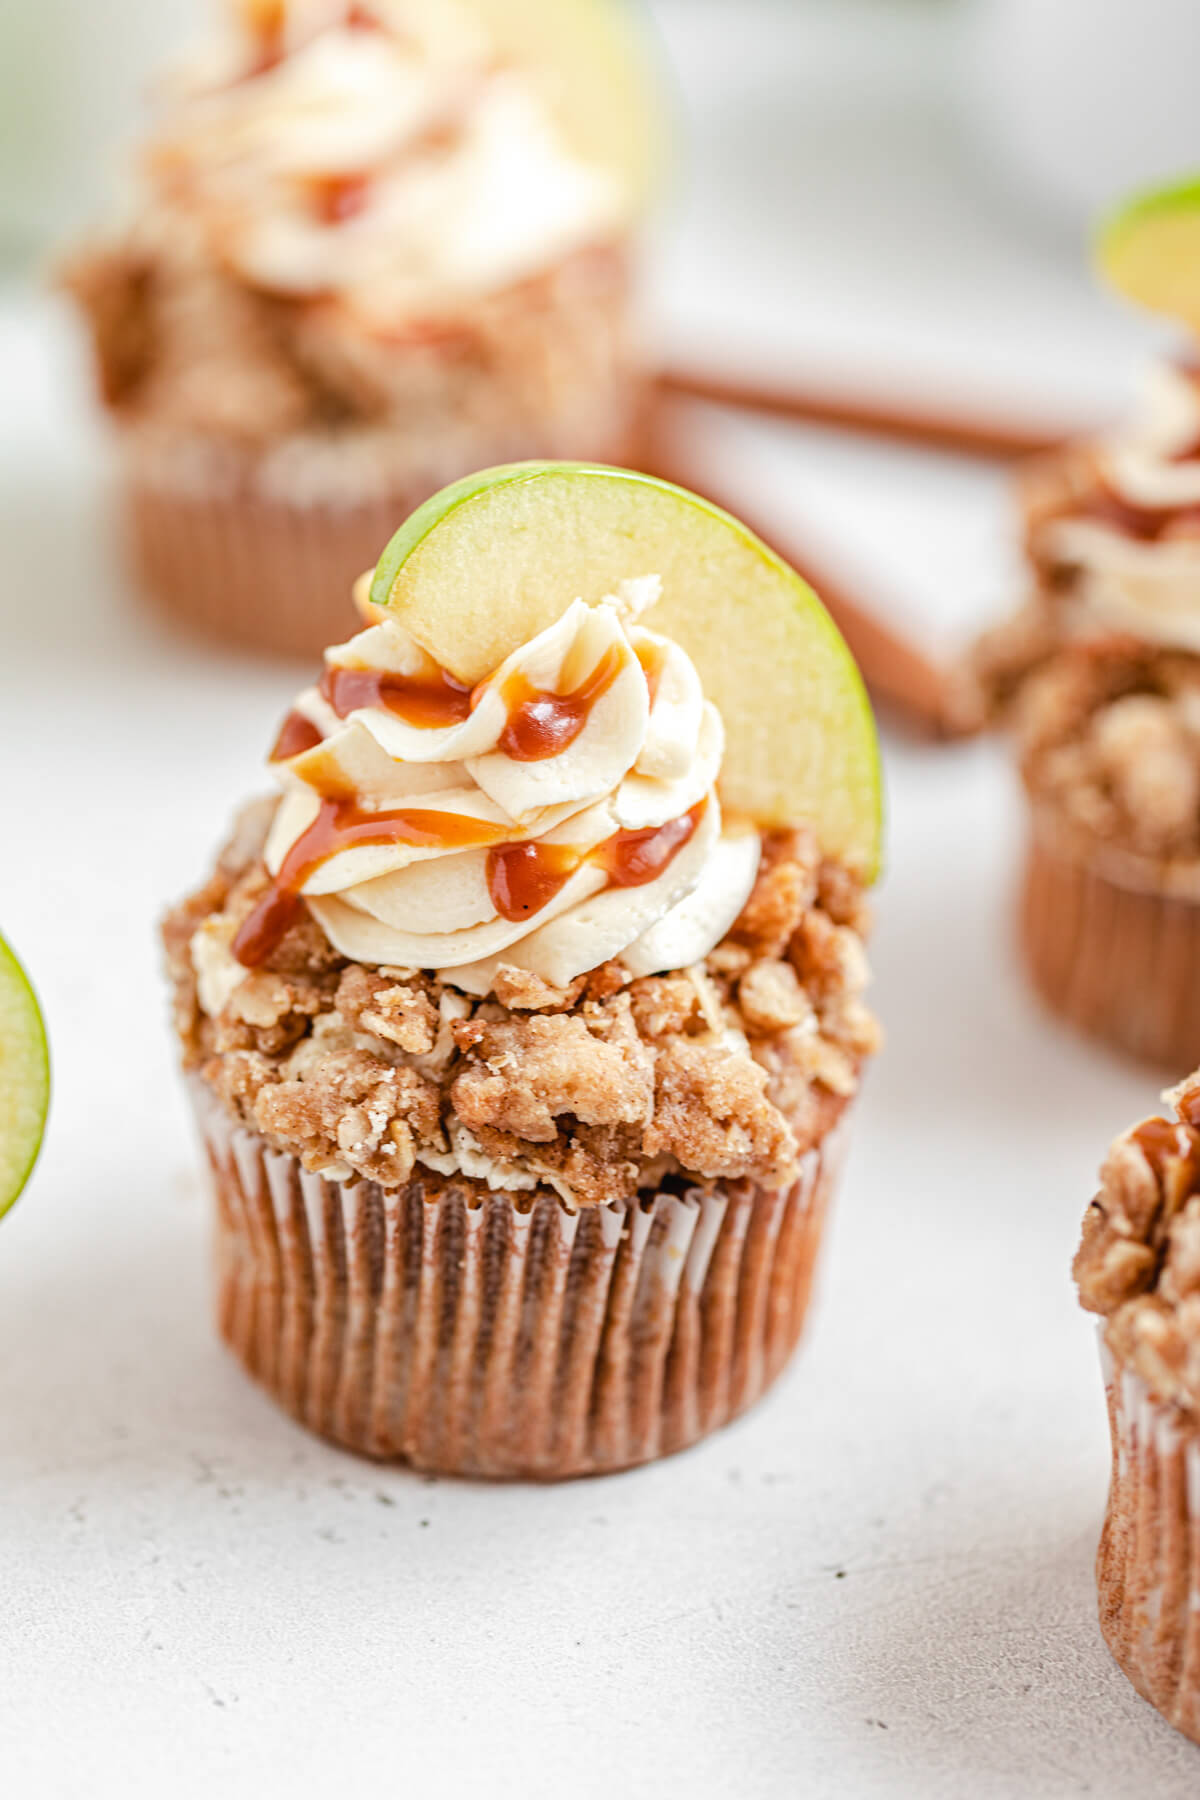 angled top view of apple and crumble cupcakes